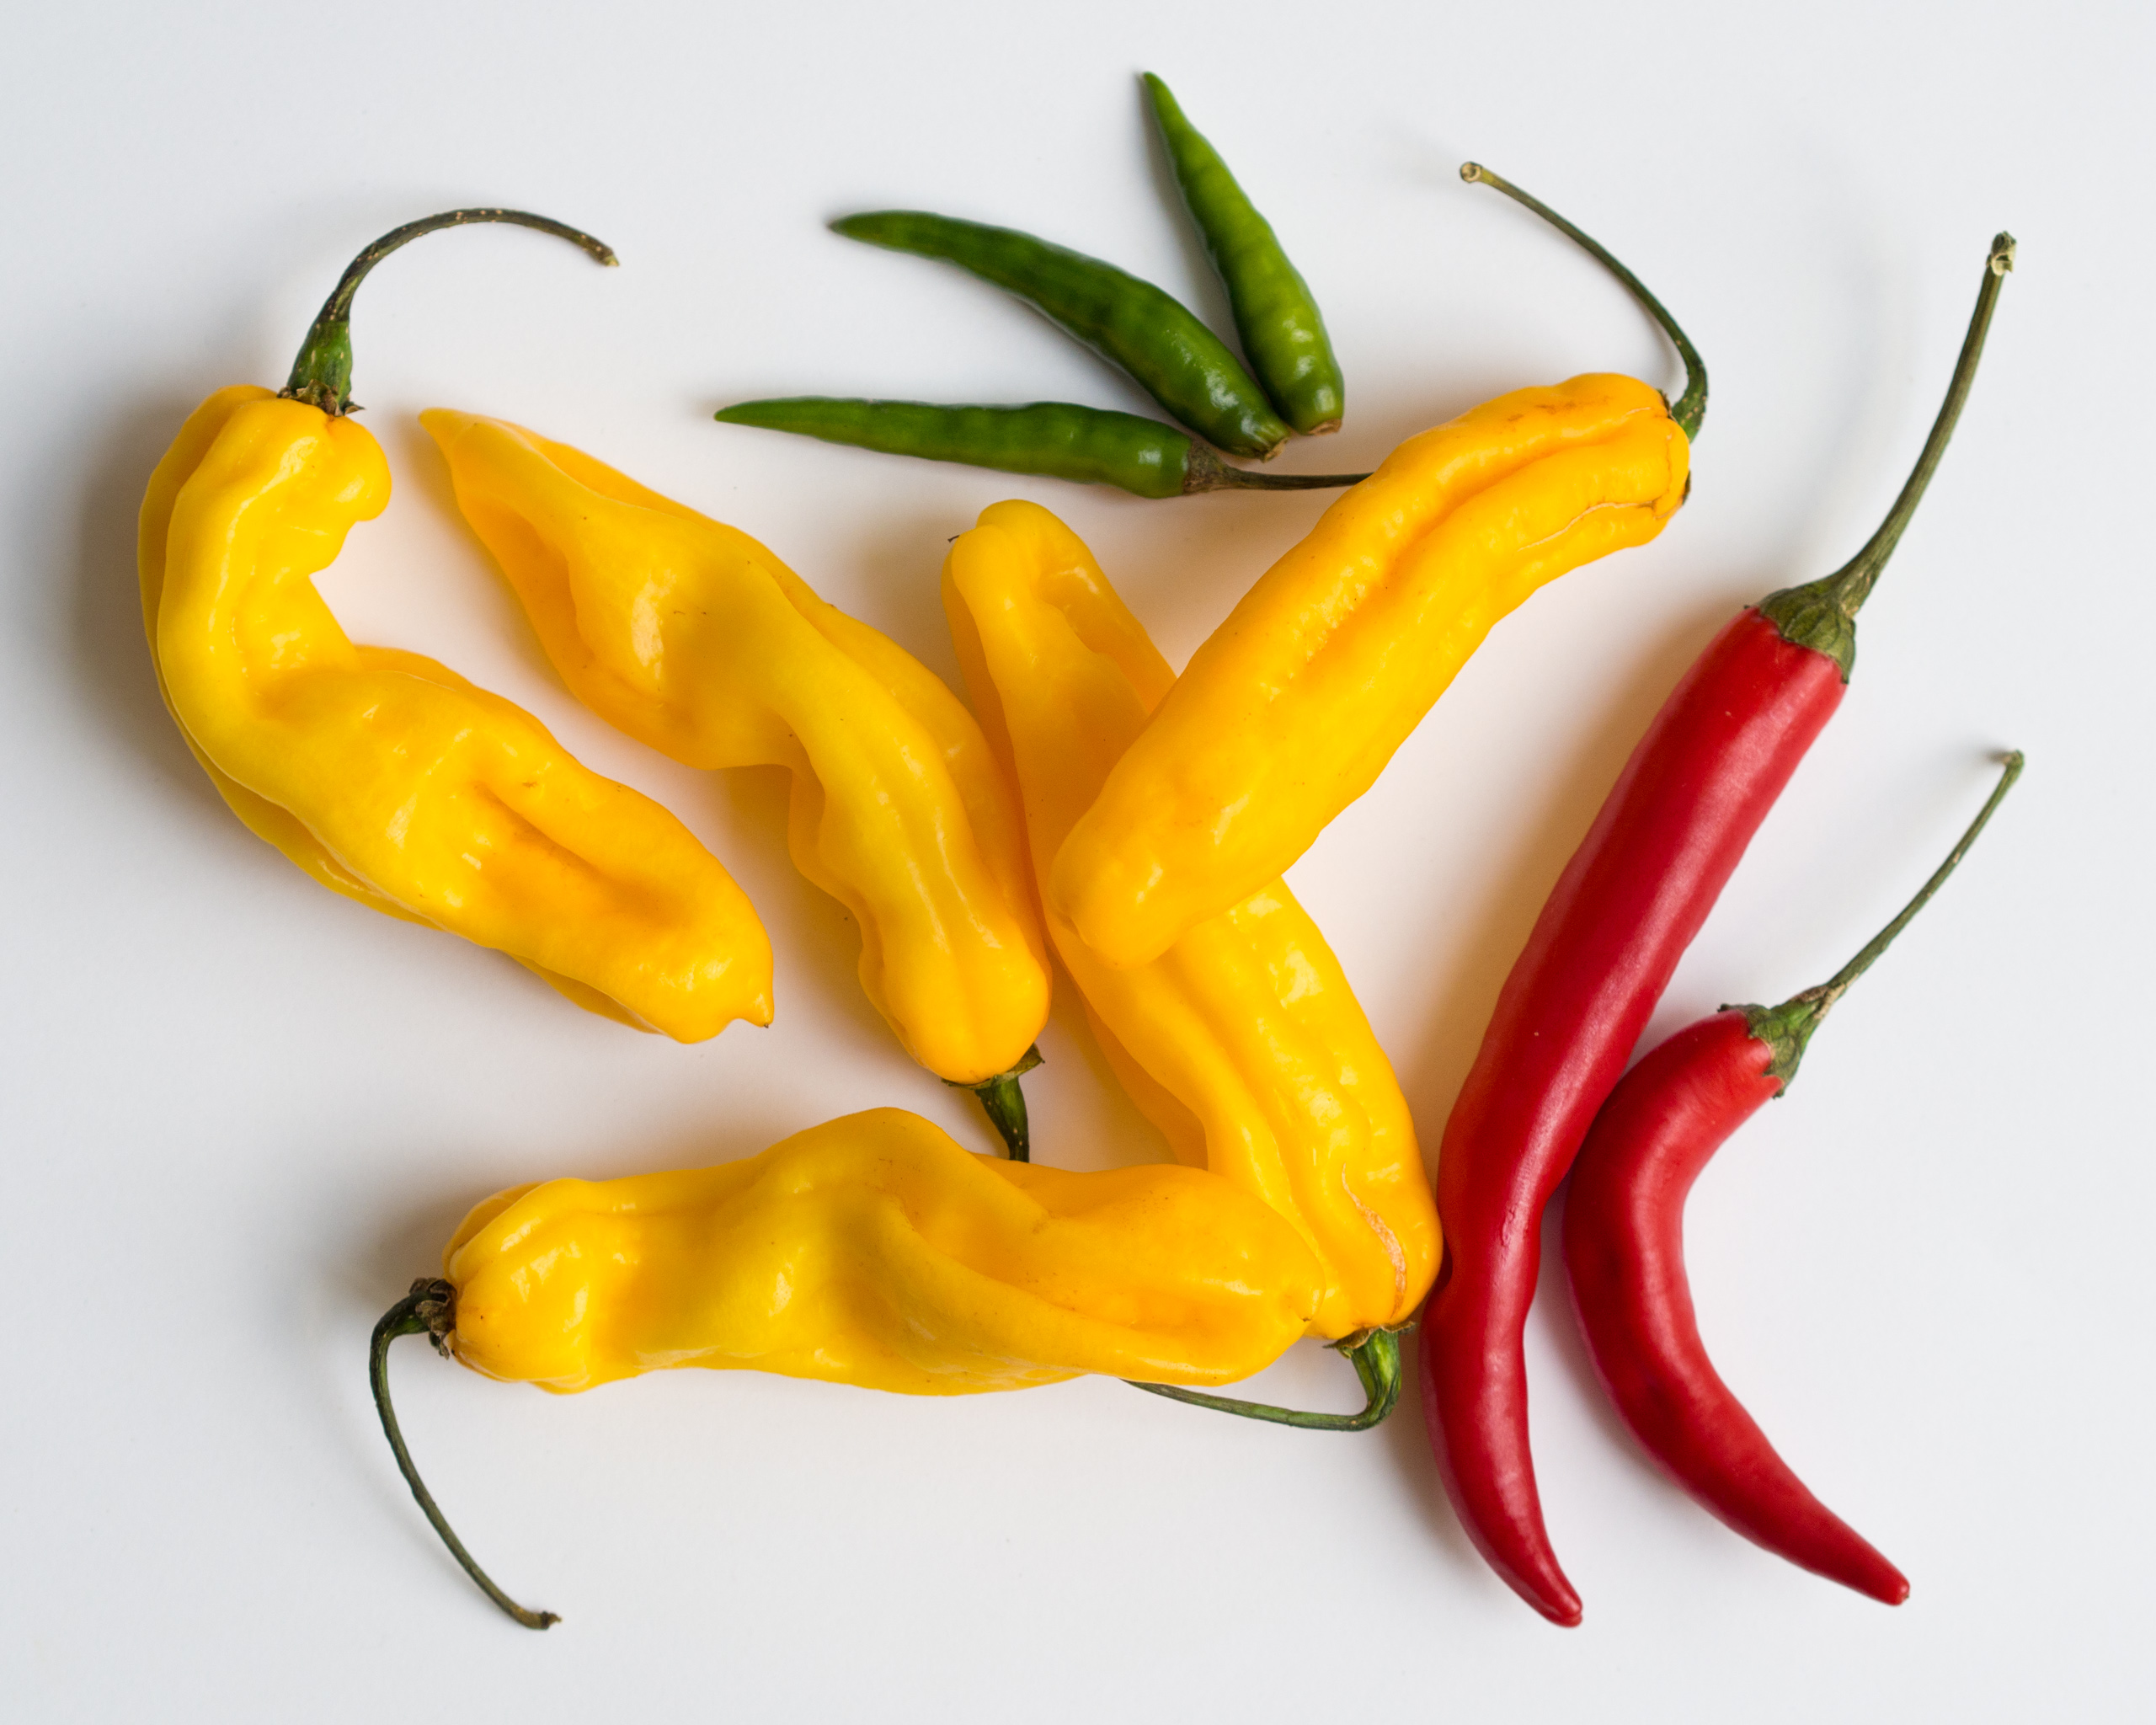 image of chili pepper